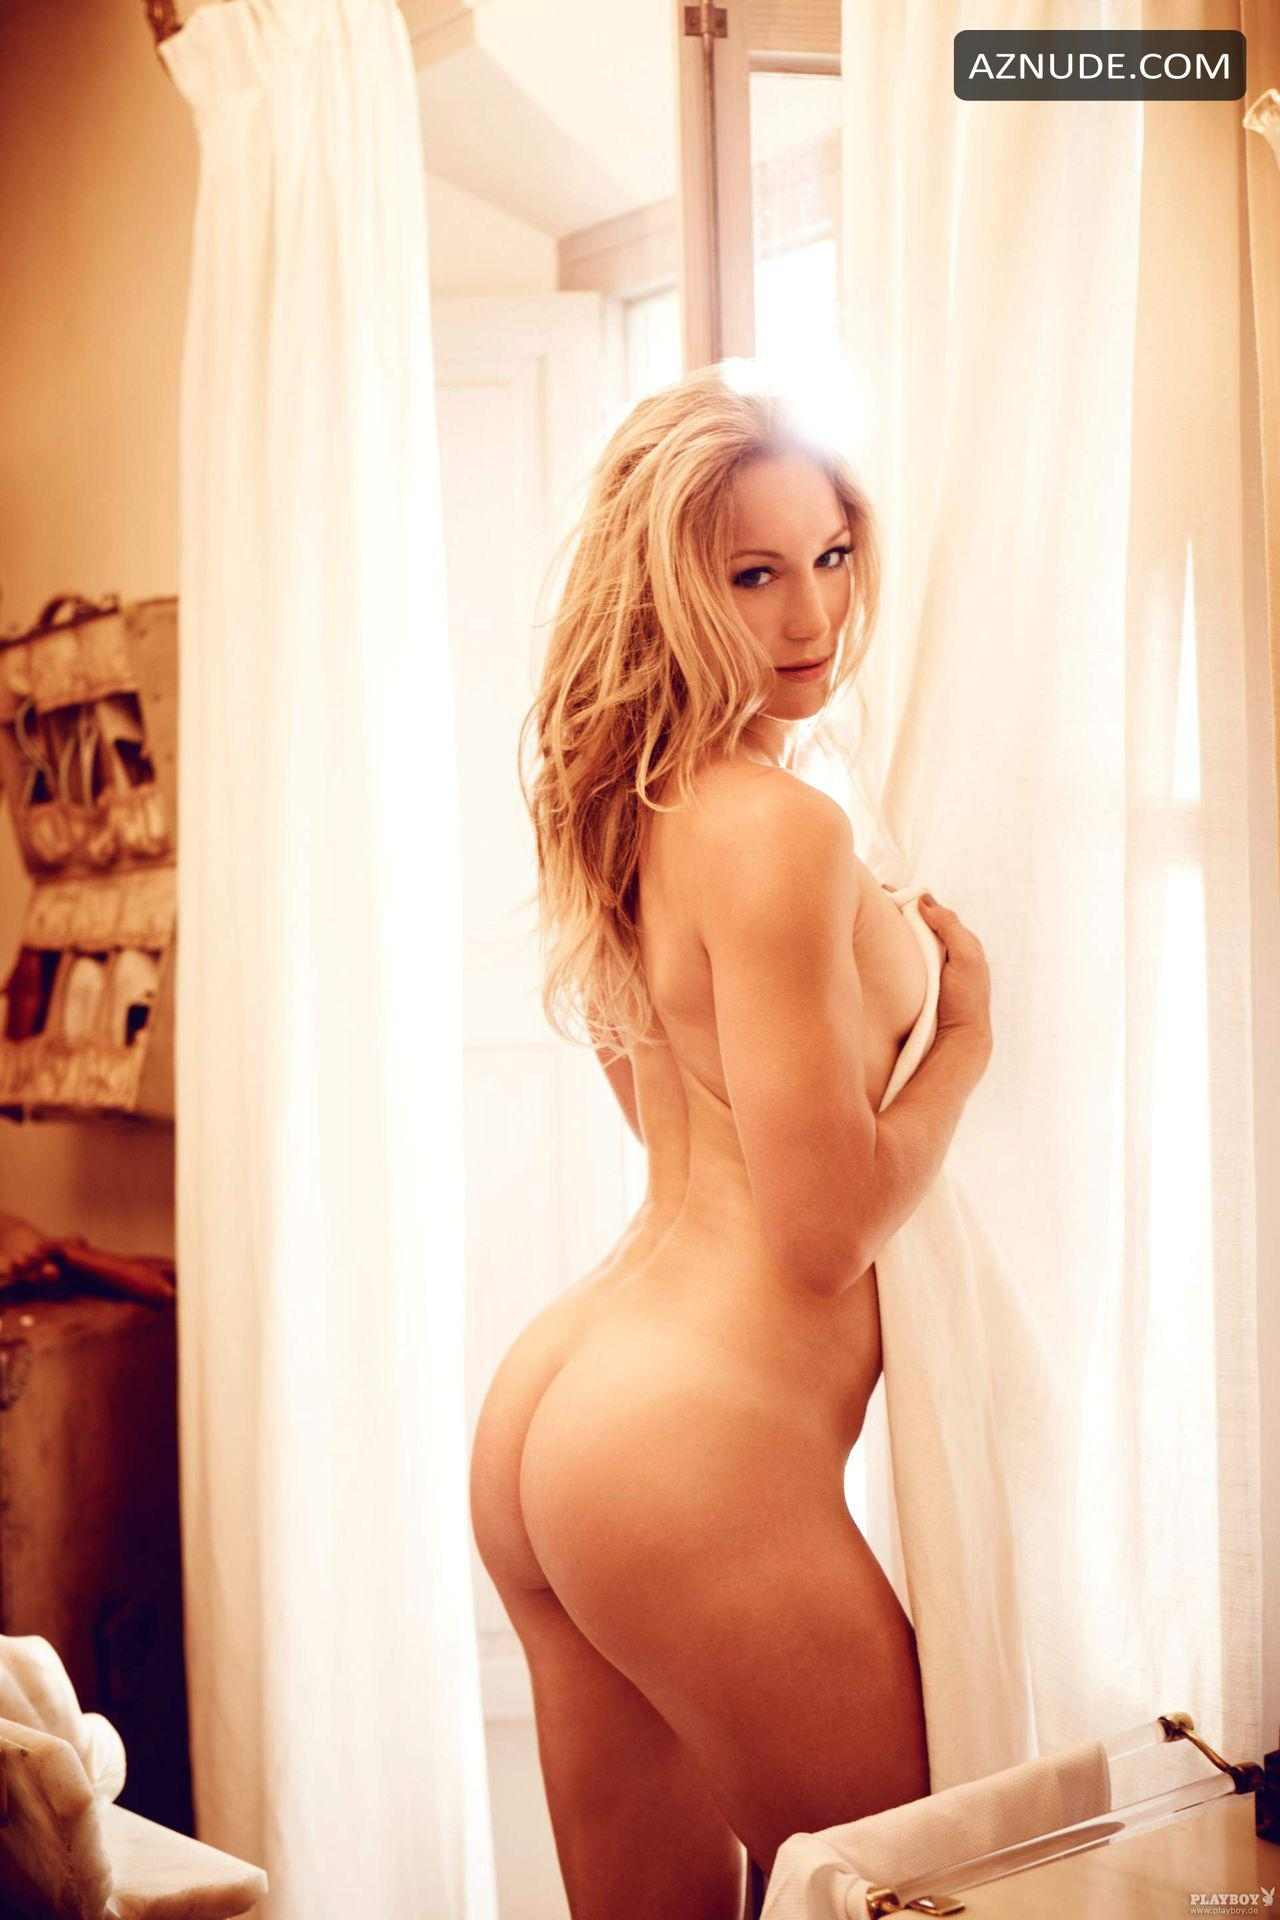 Naked christine theiss Christine Theiss